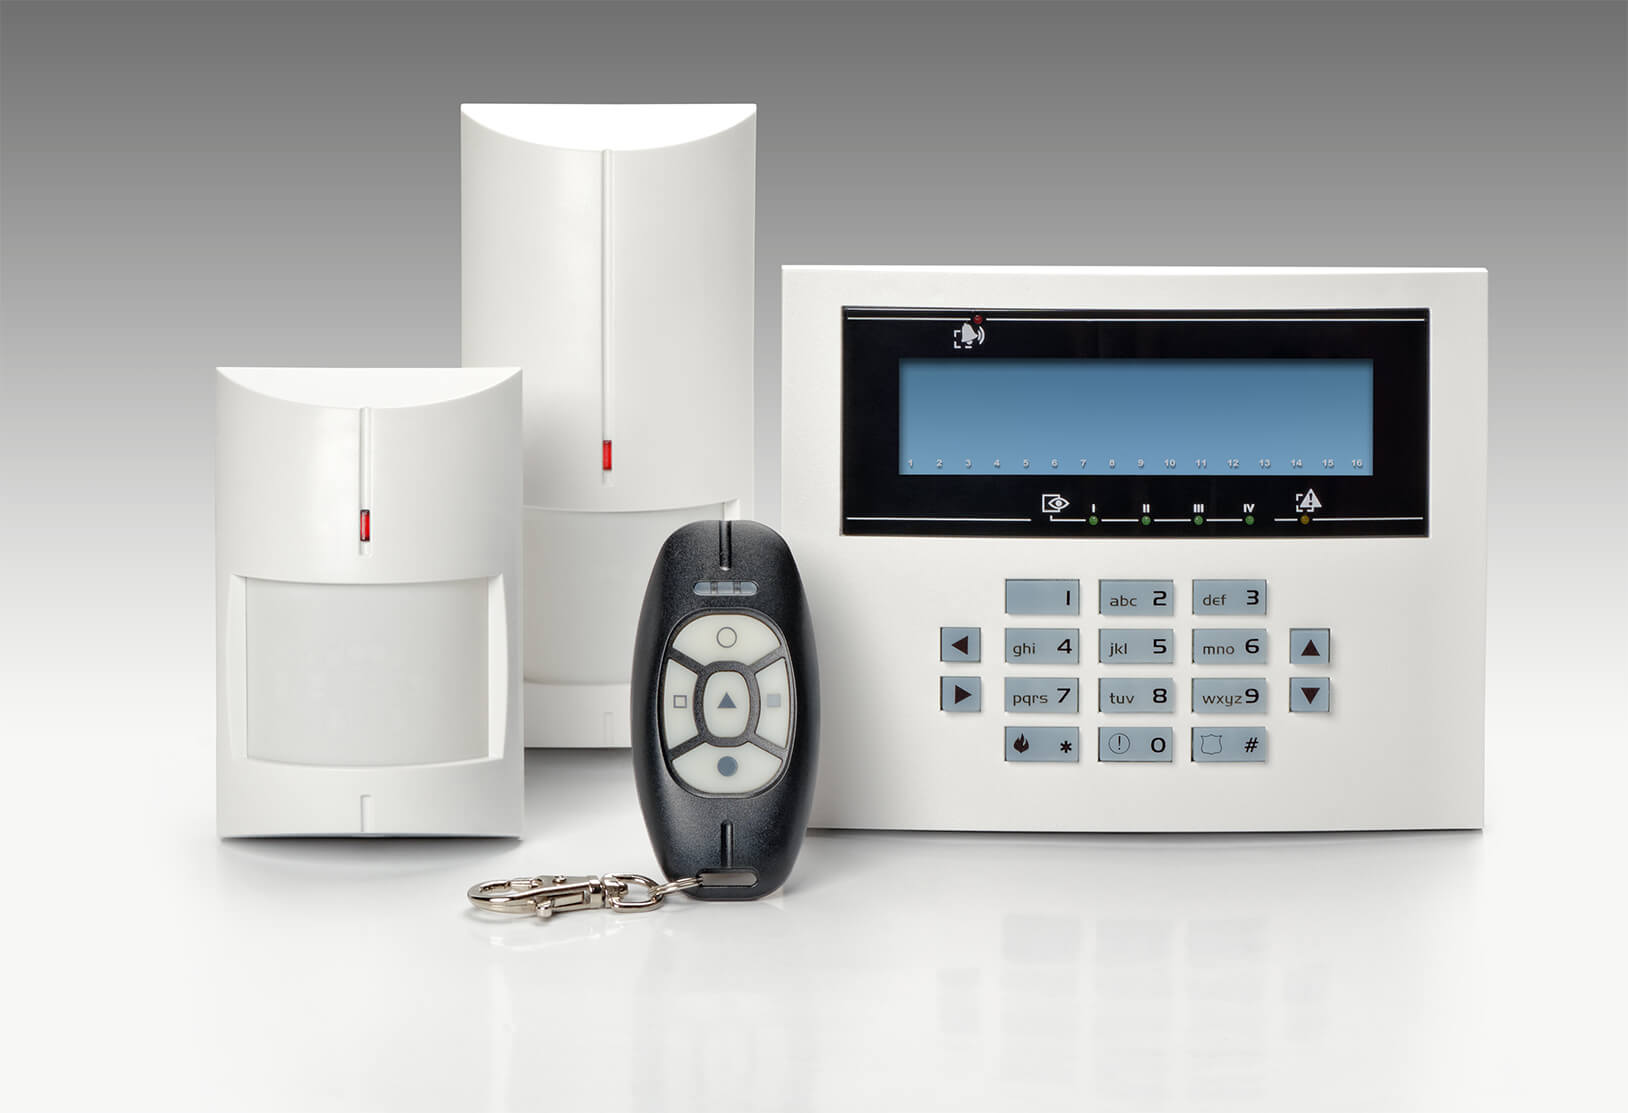 Business & Residential NSI / NACOSS Approved Burglar Alarms In Camberwell SE19 - Local Camberwell SE19 security company.Call 02078872244 - Dedicated to Safety & Security. Companies, shops and homes ..